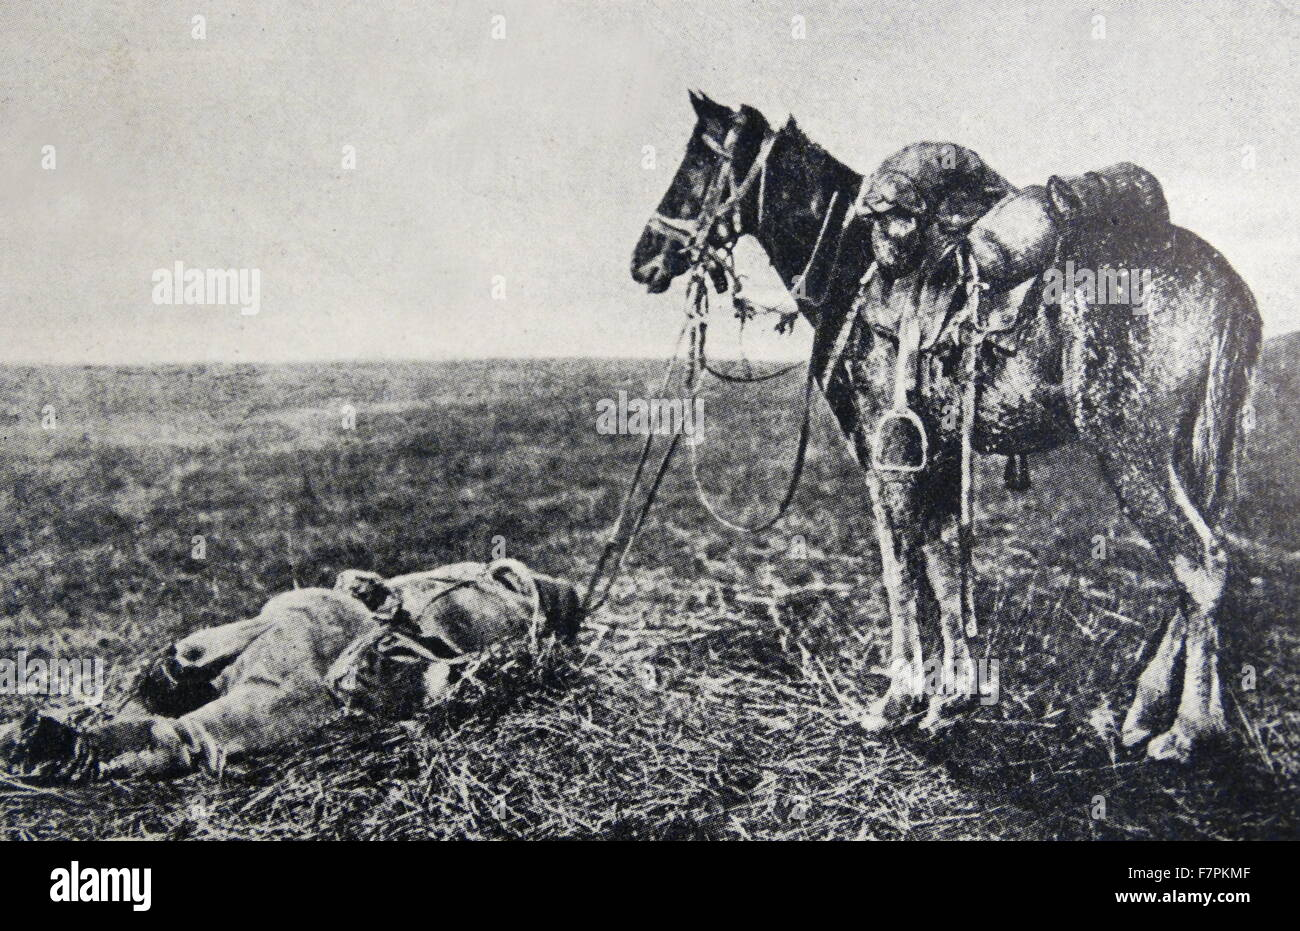 World war one: dead German cavalry soldier lies next to his horse, France 1914 Stock Photo